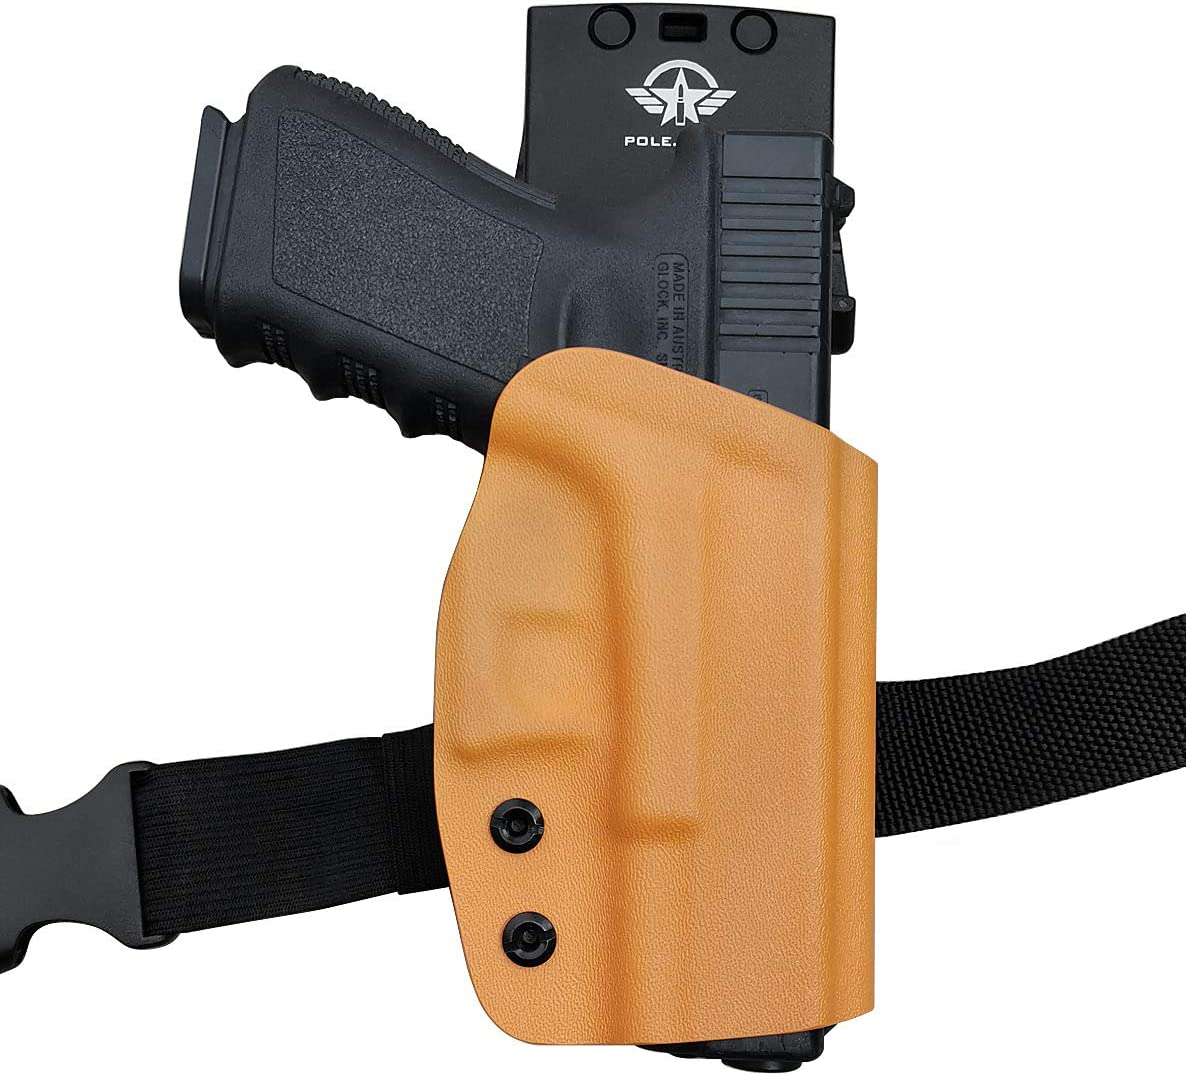 PoLe.Craft OWB KYDEX Holster Fits: Glock 19 19x Glock 23 25 32 Glock 17 22 31 Glock 26 27 33 (Gen 1-5) CZ P10 Gun Holster Belt Outside Carry Pistol Case Pouch Men Women Friend Gifts